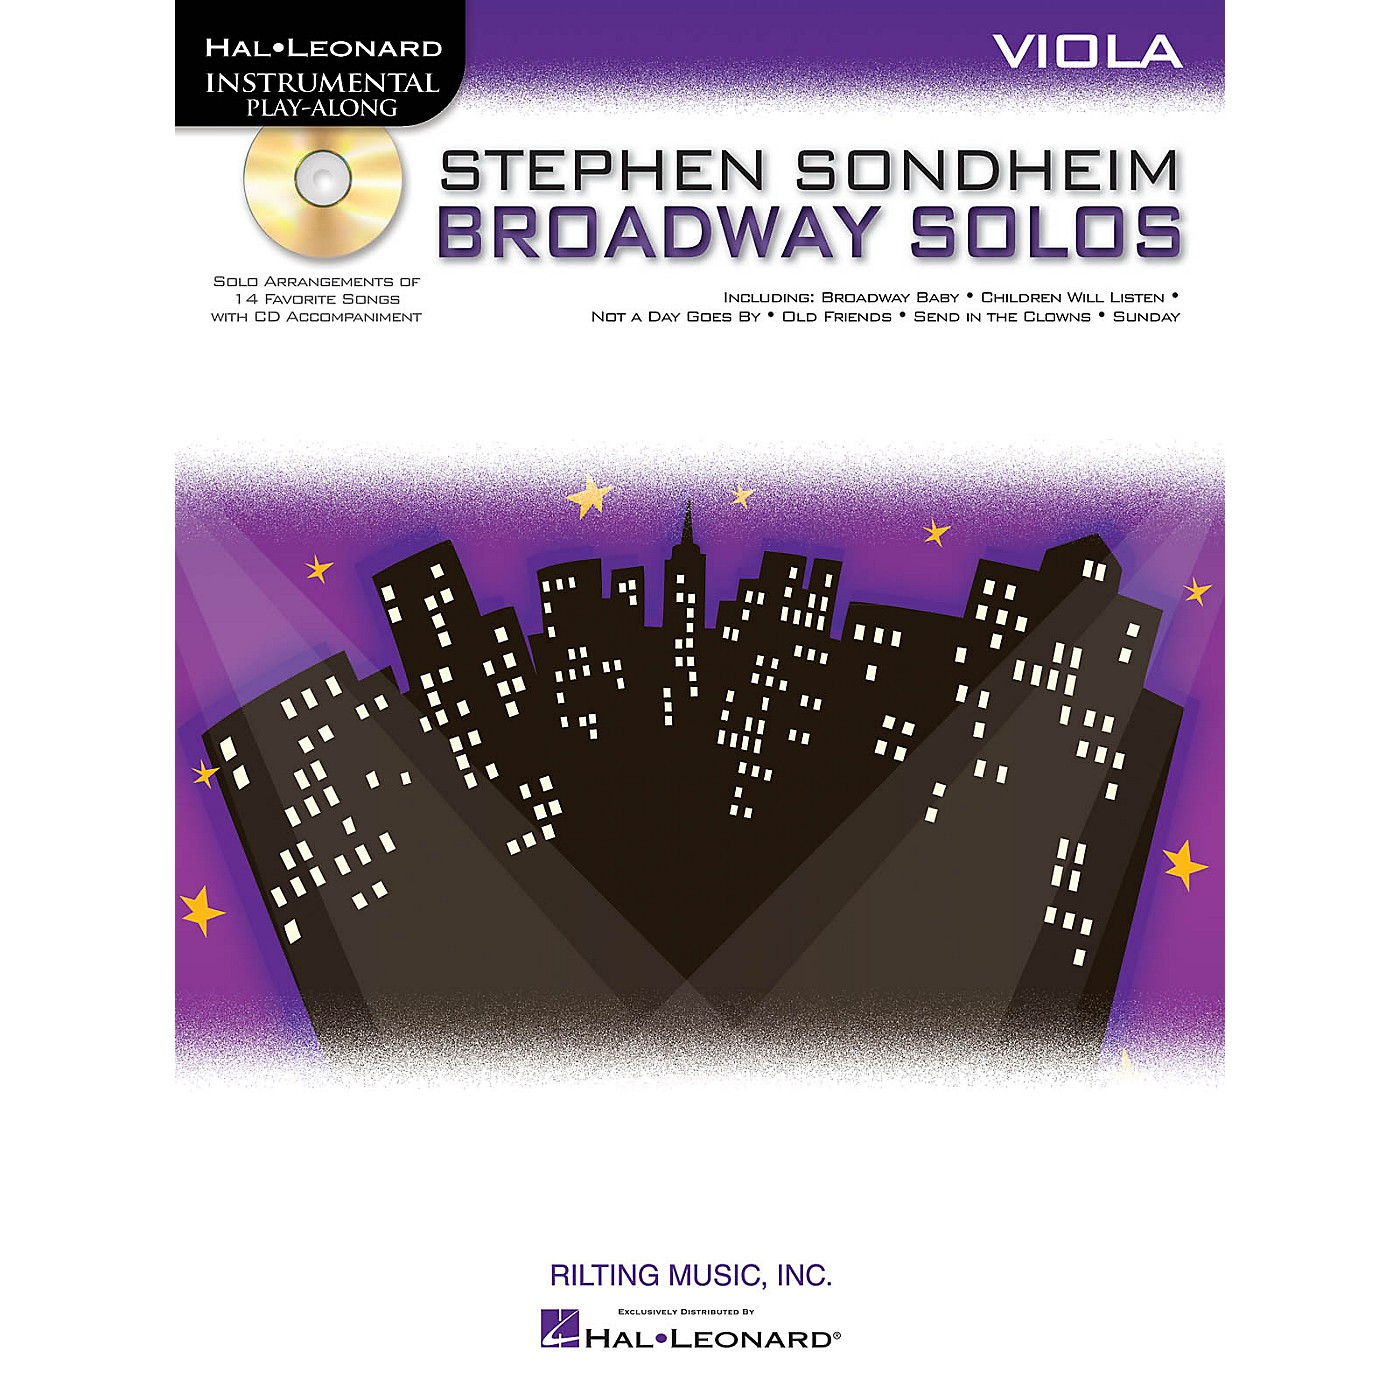 Hal Leonard Stephen Sondheim - Broadway Solos (Viola) Instrumental Play-Along Series Softcover with CD thumbnail